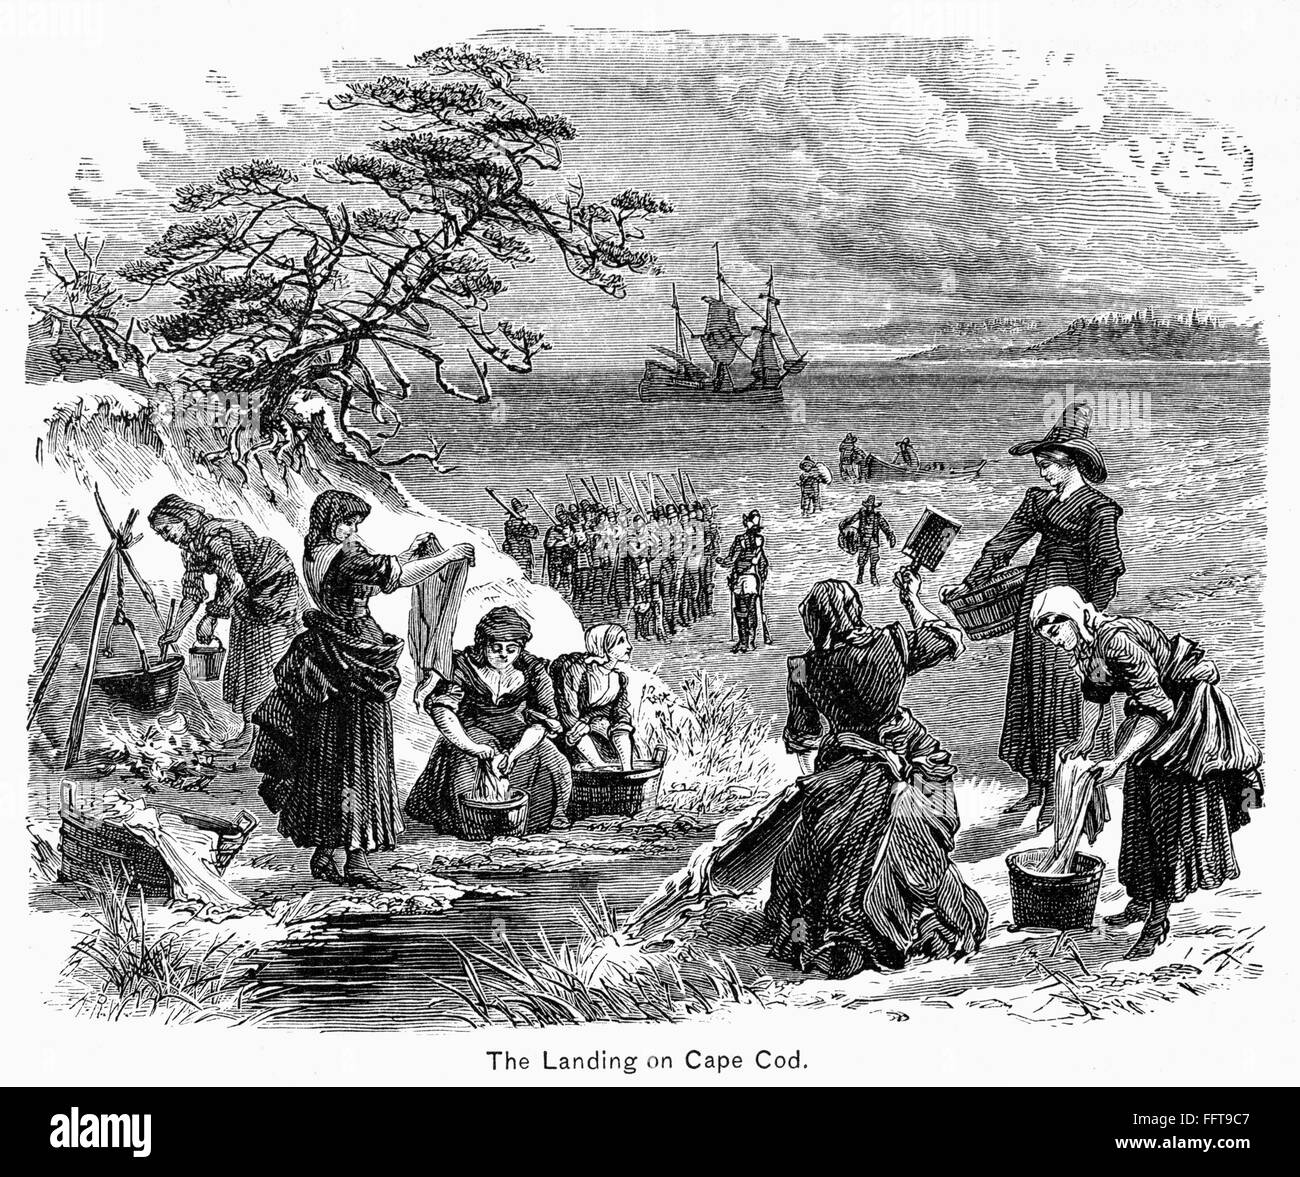 Cape Cod Clothes Part - 40: /nPilgrims Washing Clothes After Landing At Cape Cod, Massachusetts, 1620.  Wood Engraving, American, 19th Century.